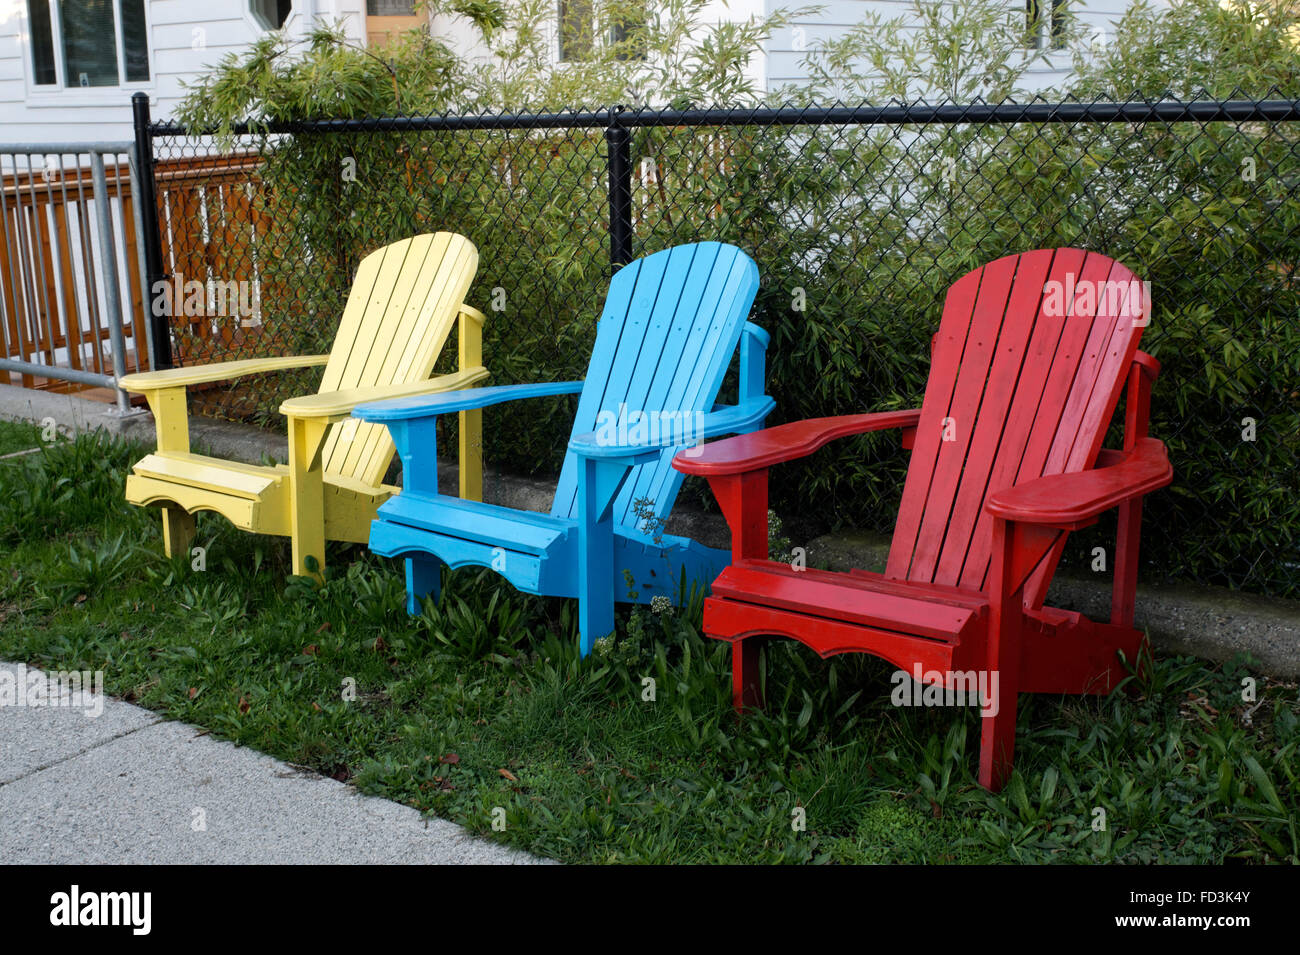 colorful wooden adirondack chairs stock photos & colorful wooden